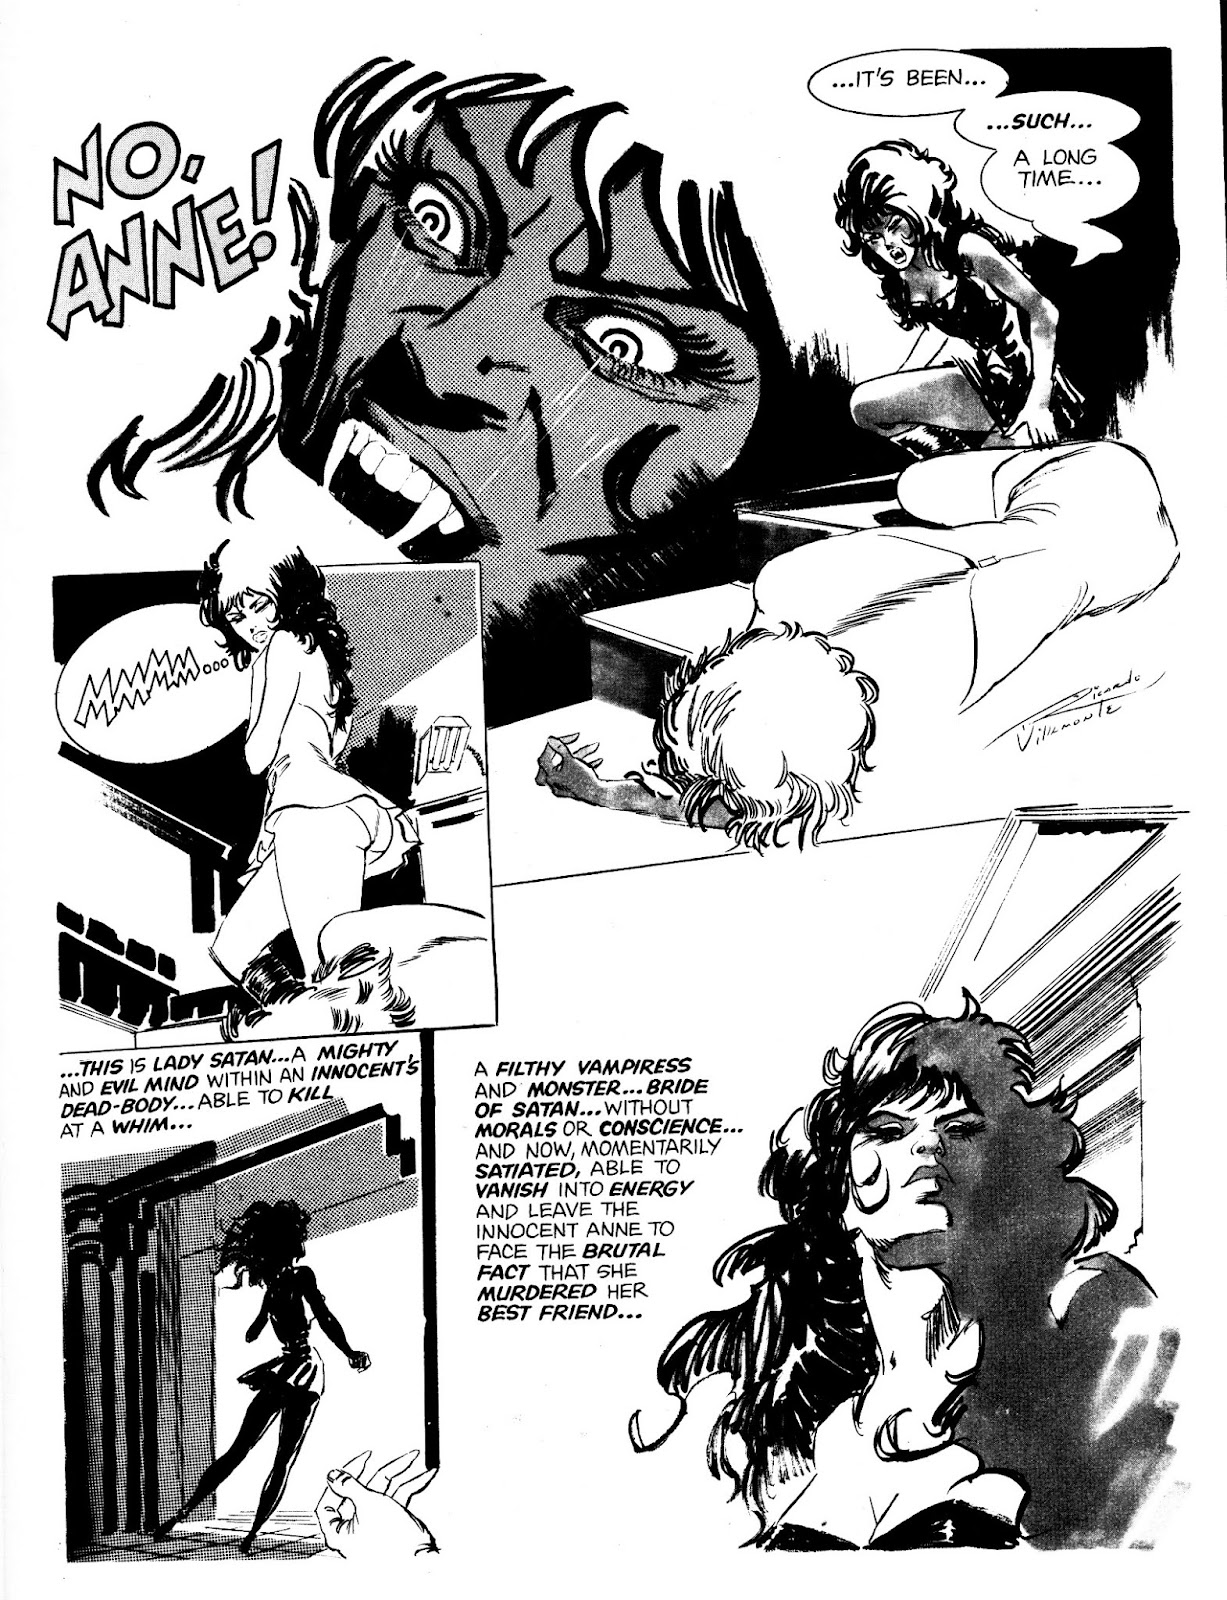 Scream (1973) issue 3 - Page 31